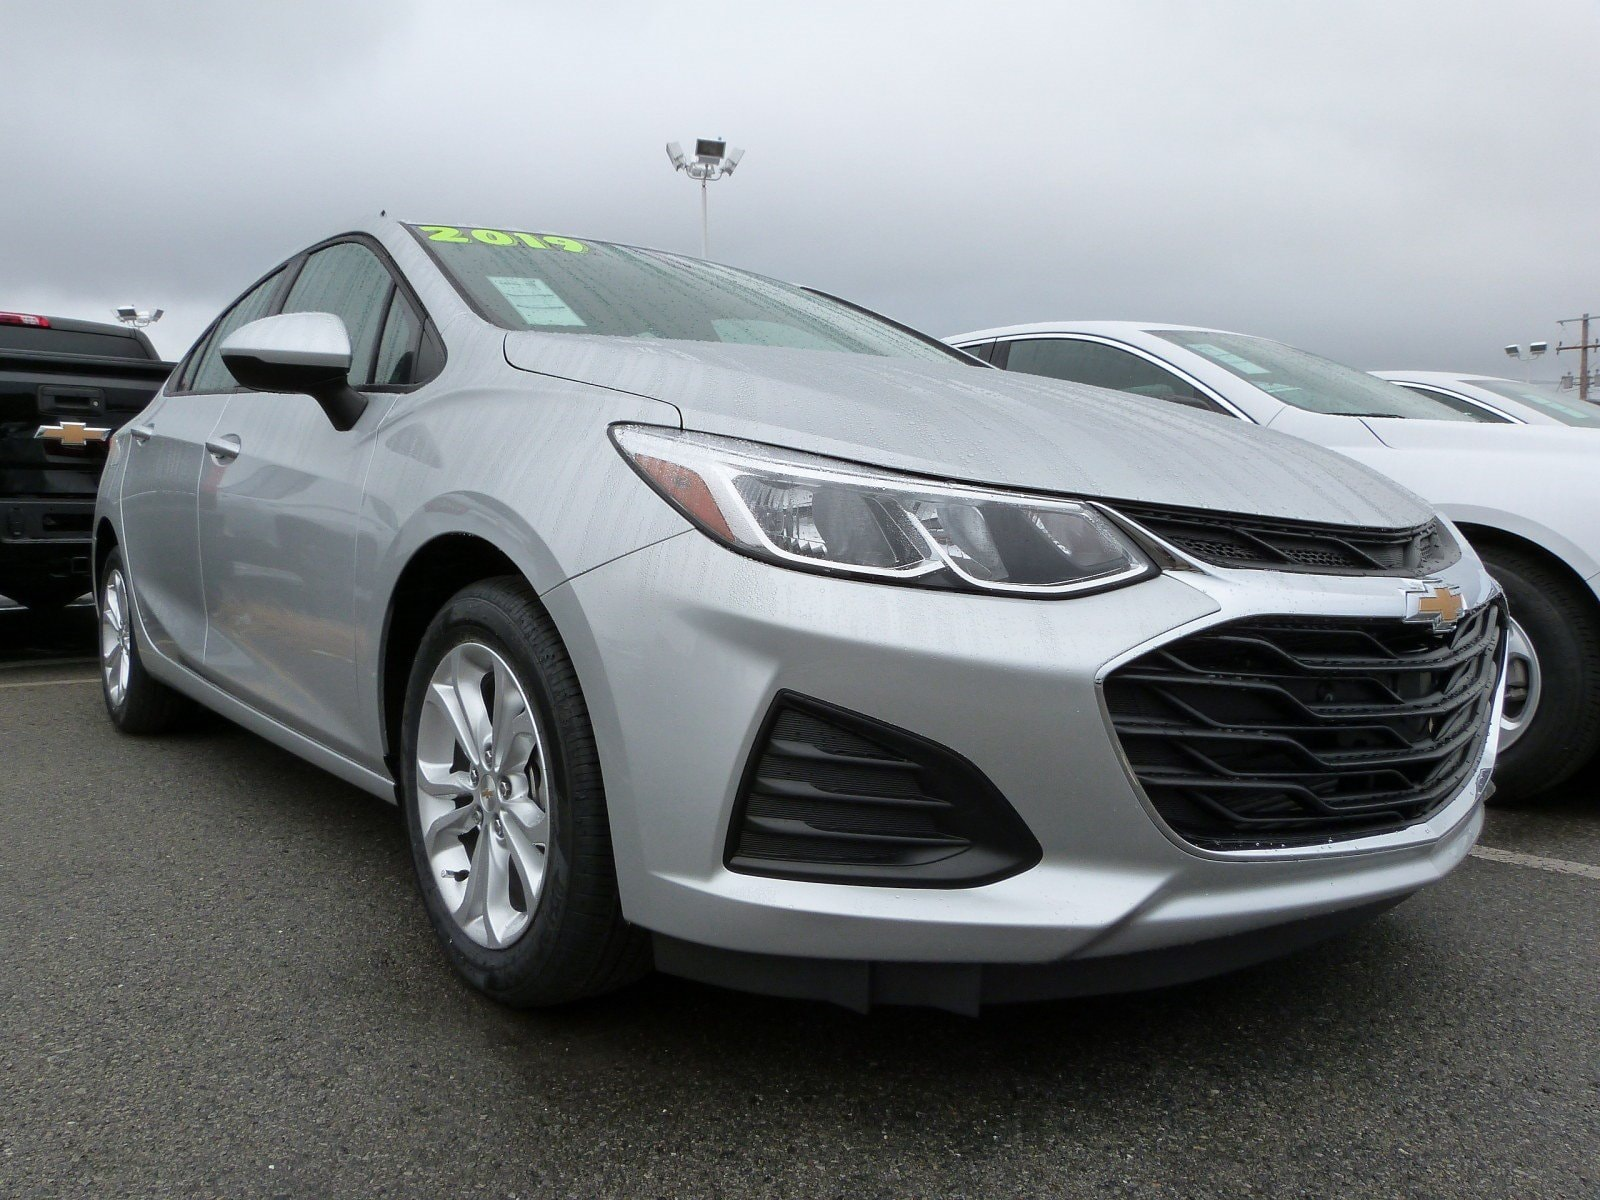 New 2019 Chevrolet Cruze For Sale at Scott Family of